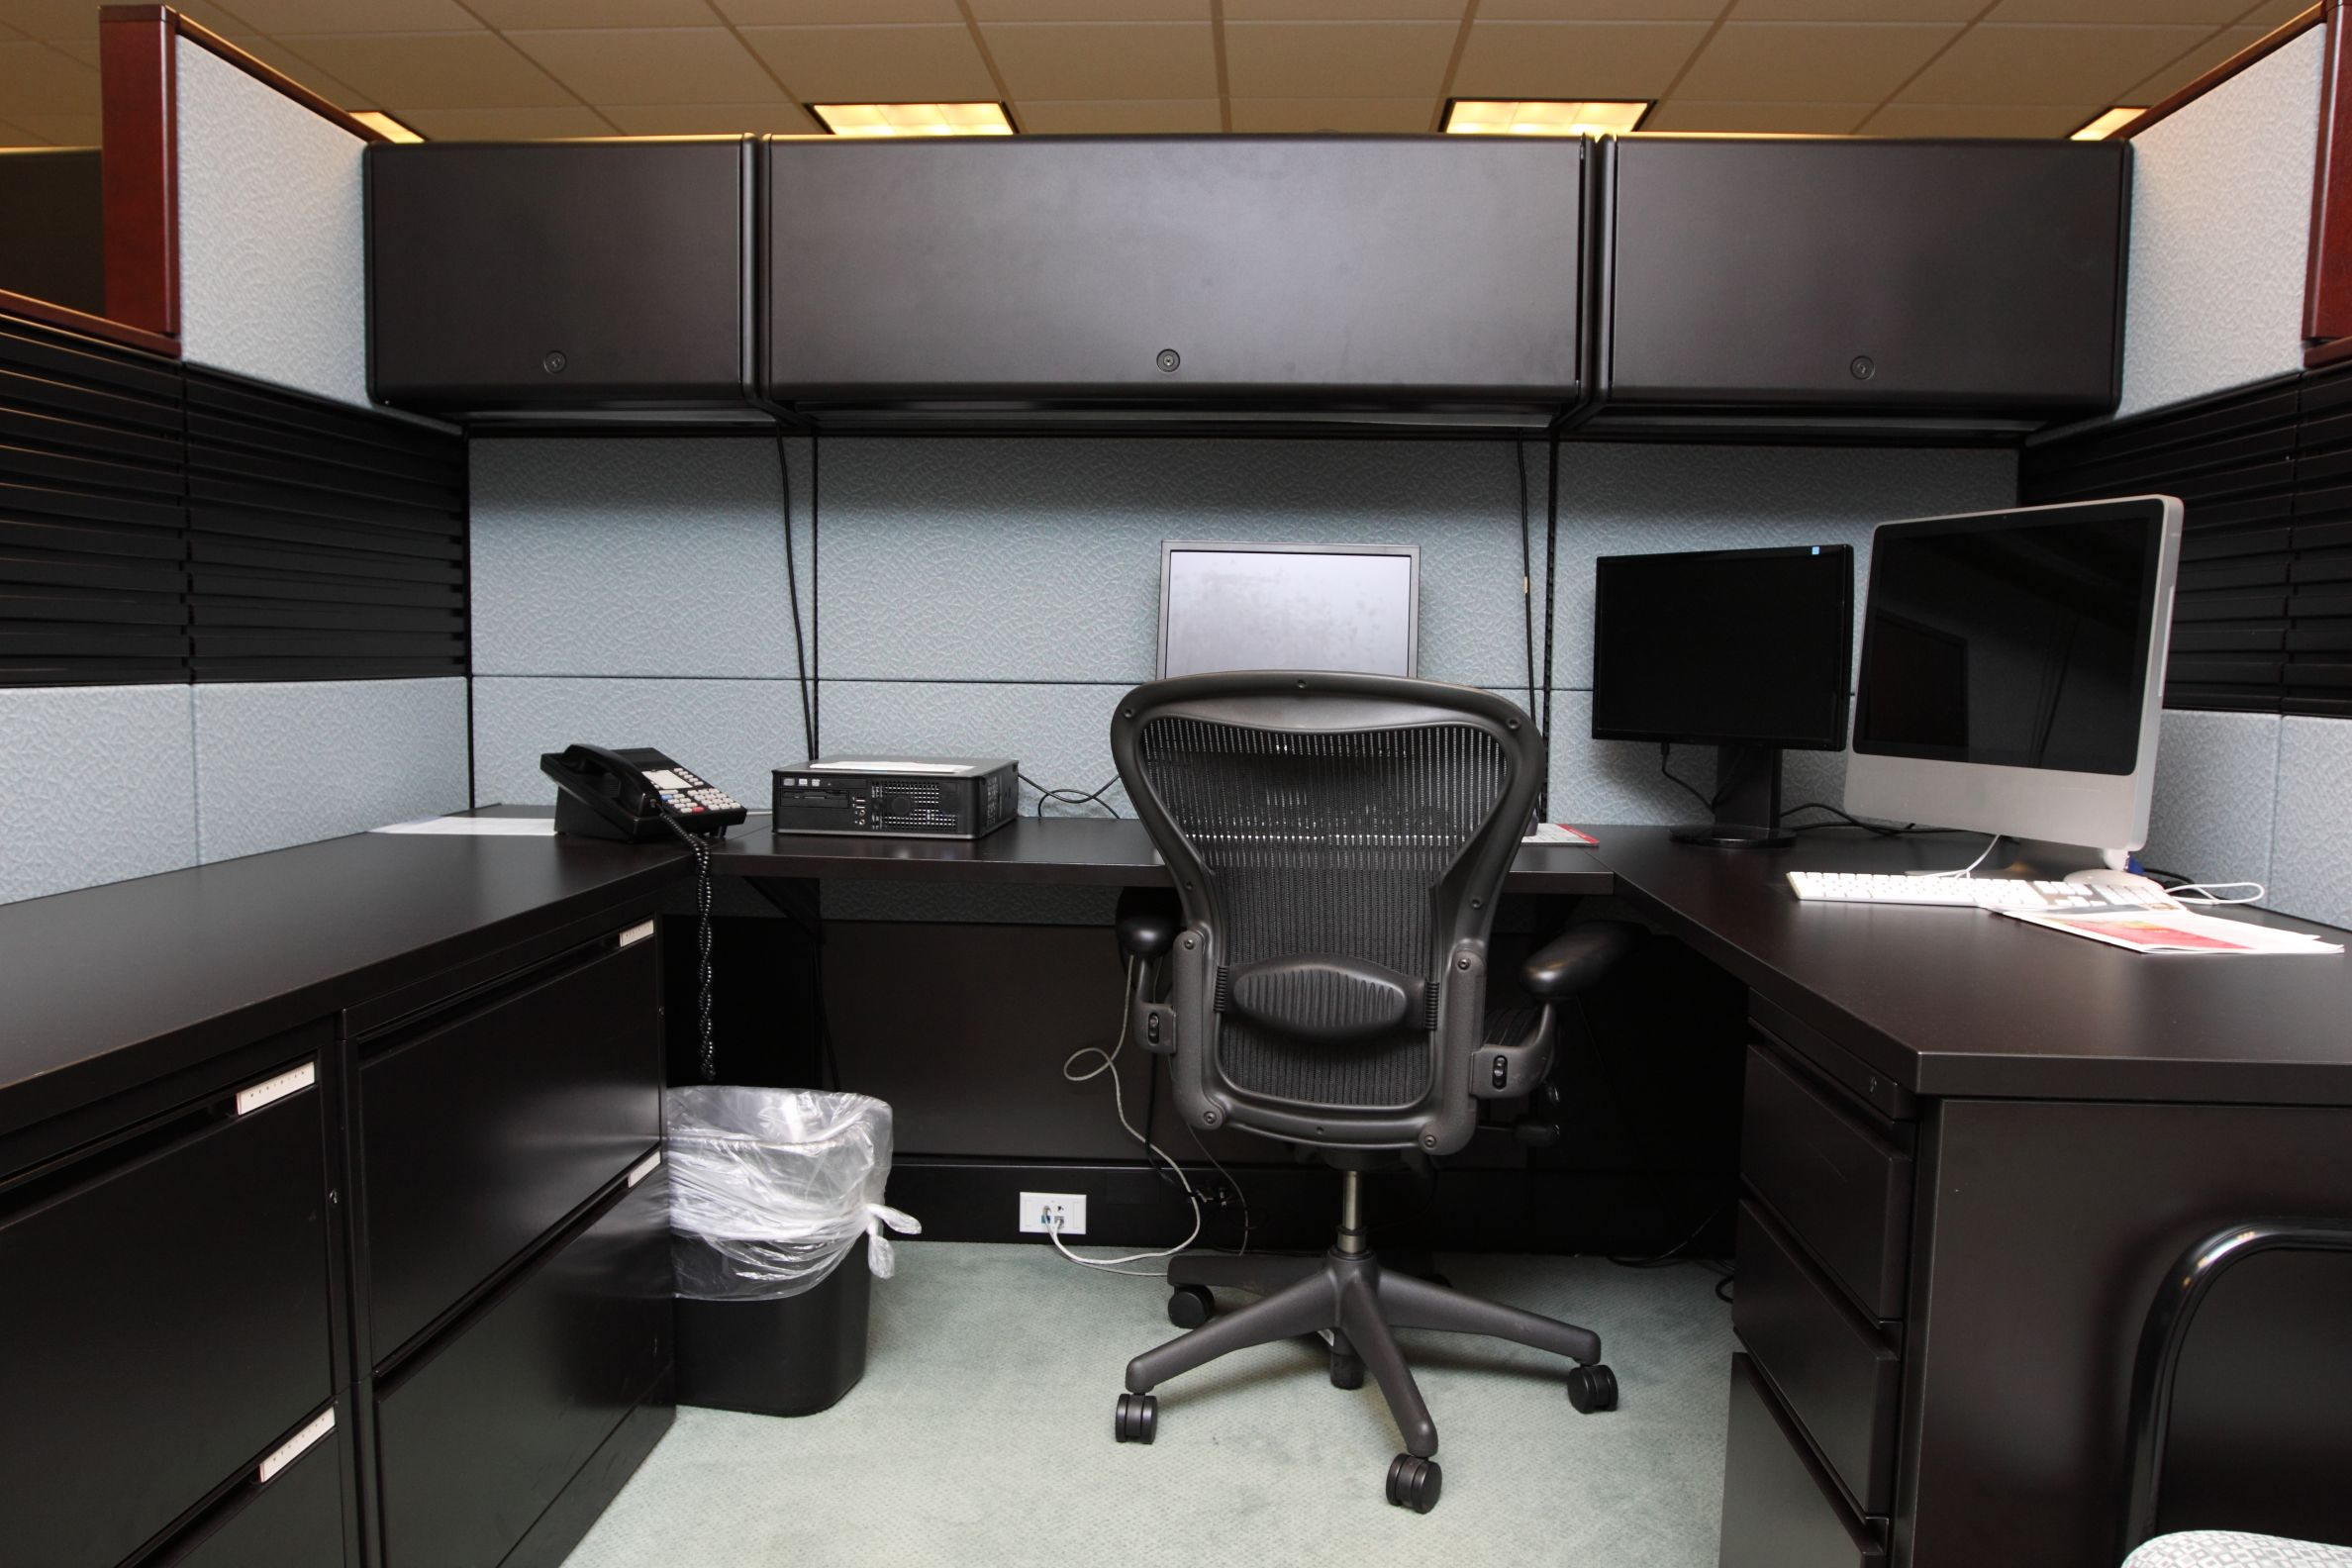 Computer Facilities Management Services